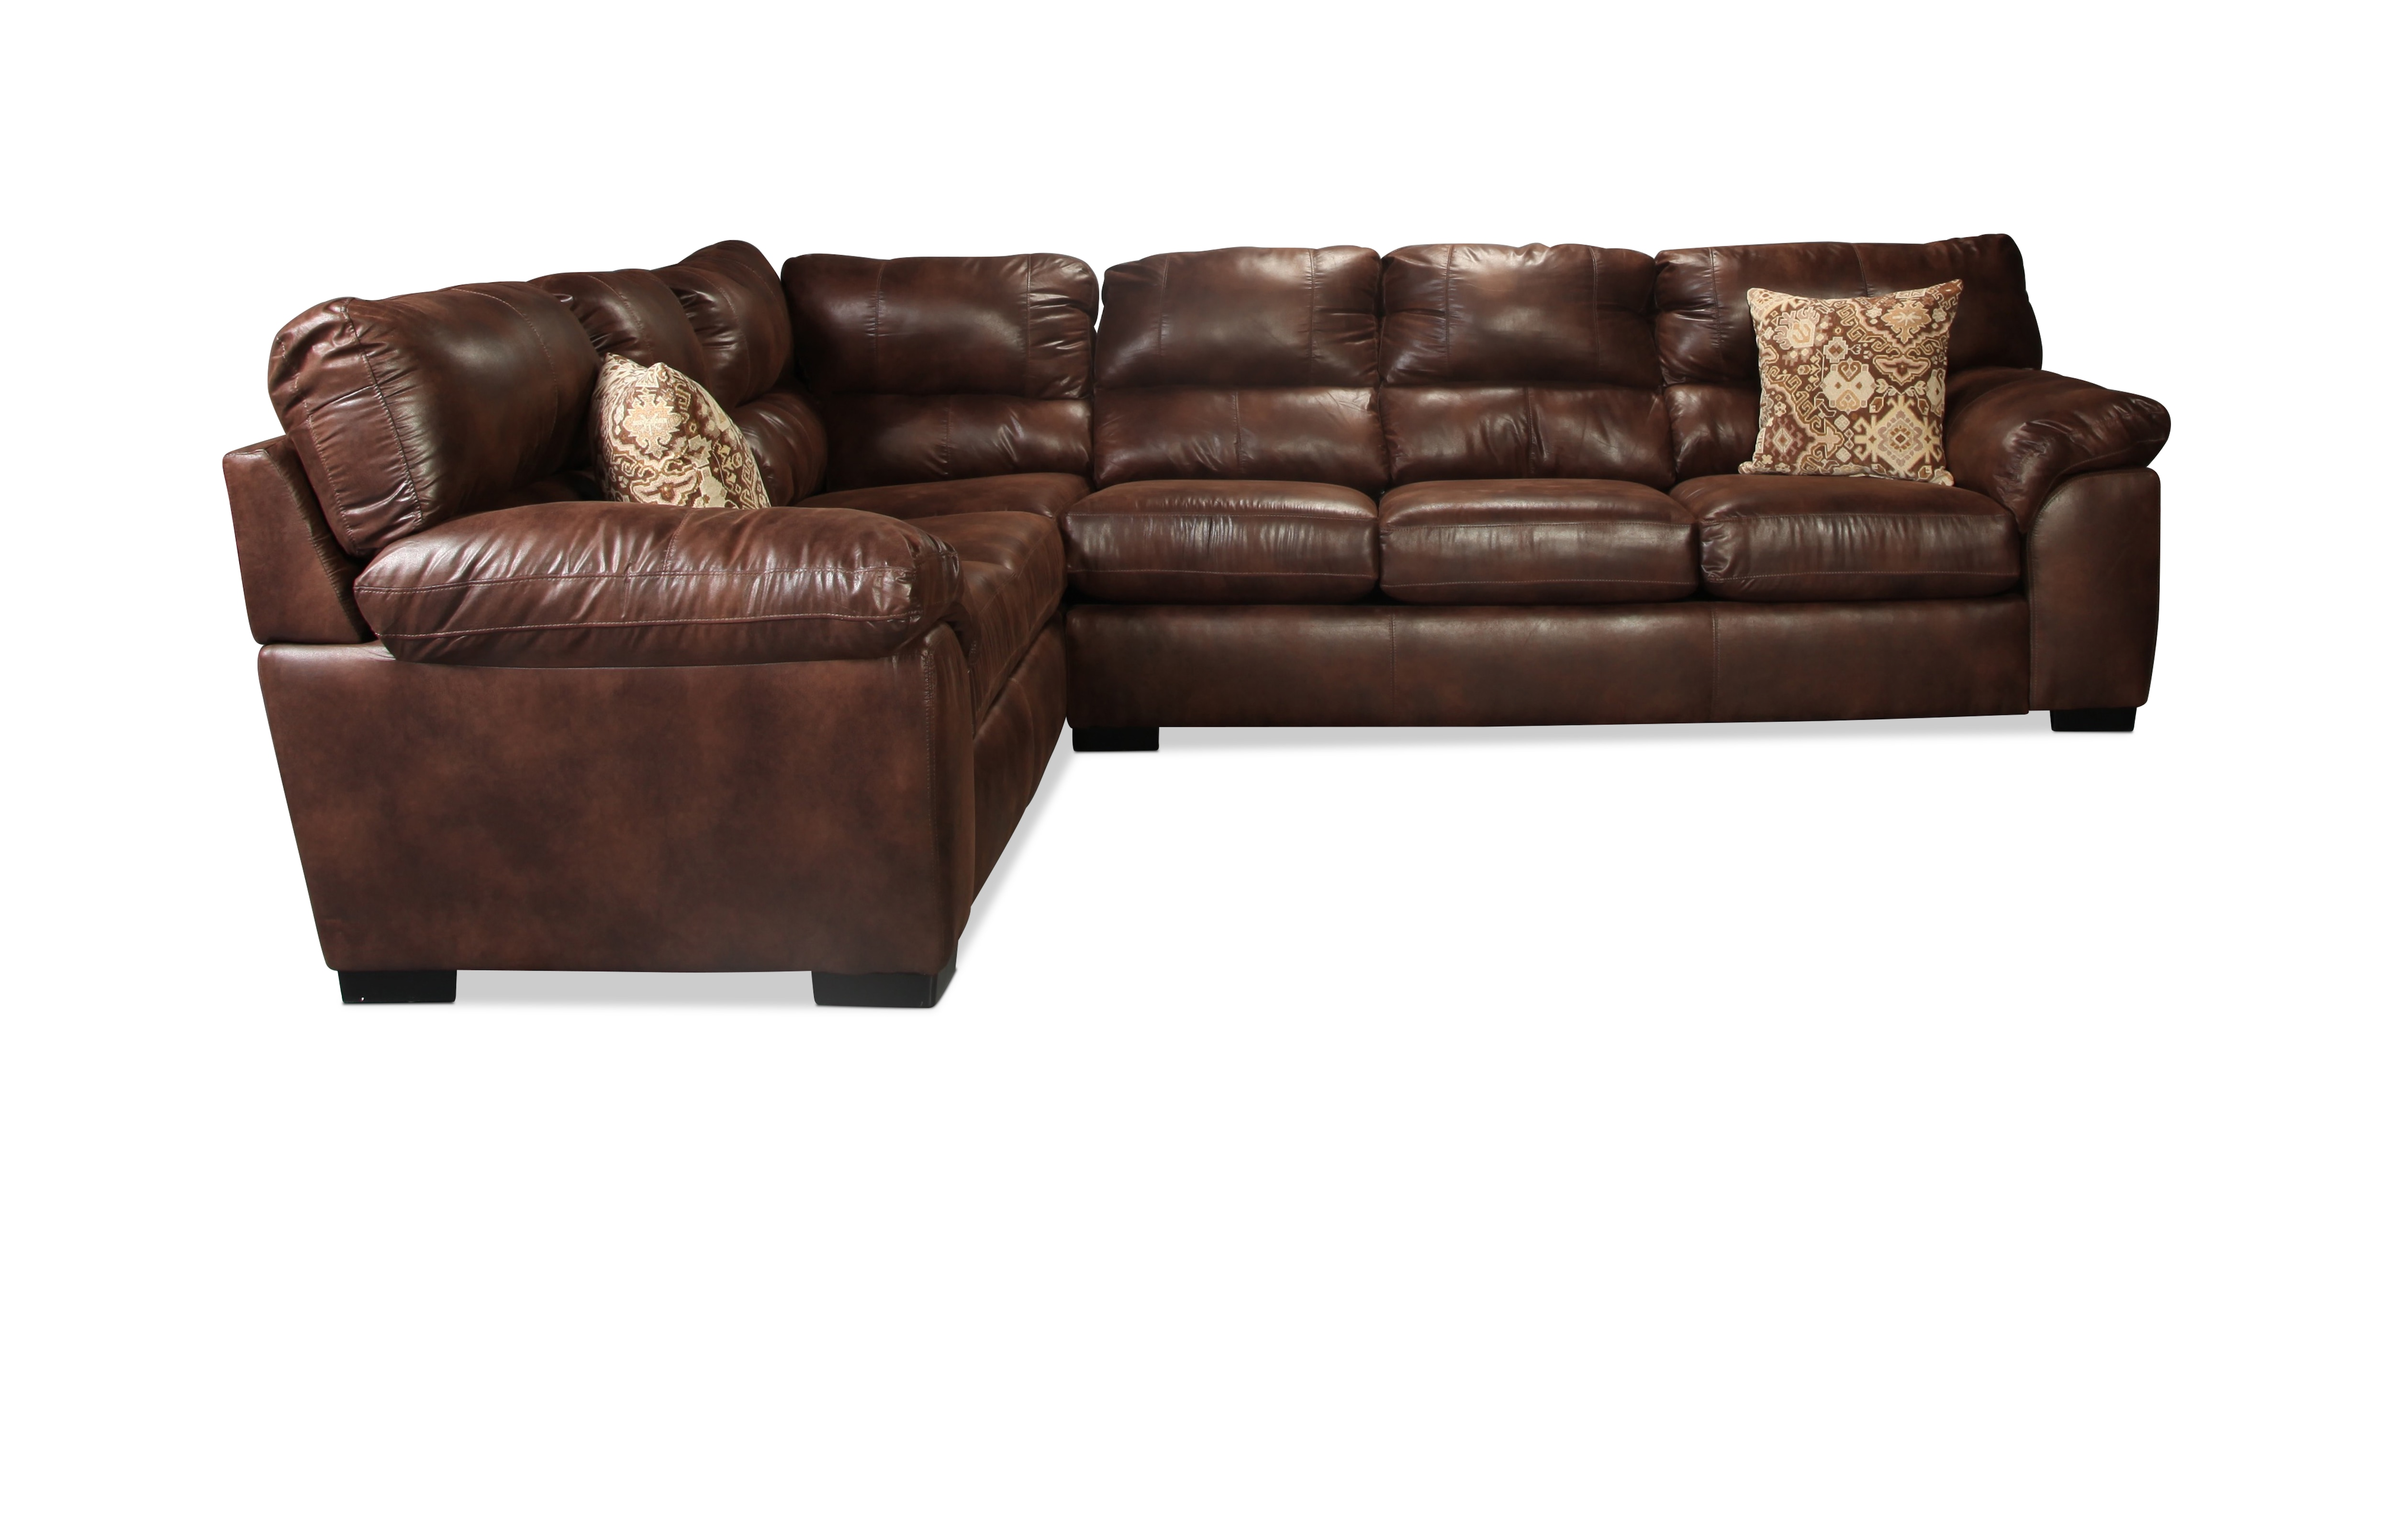 Sectionals levin furniture for Levin furniture sectional sofa